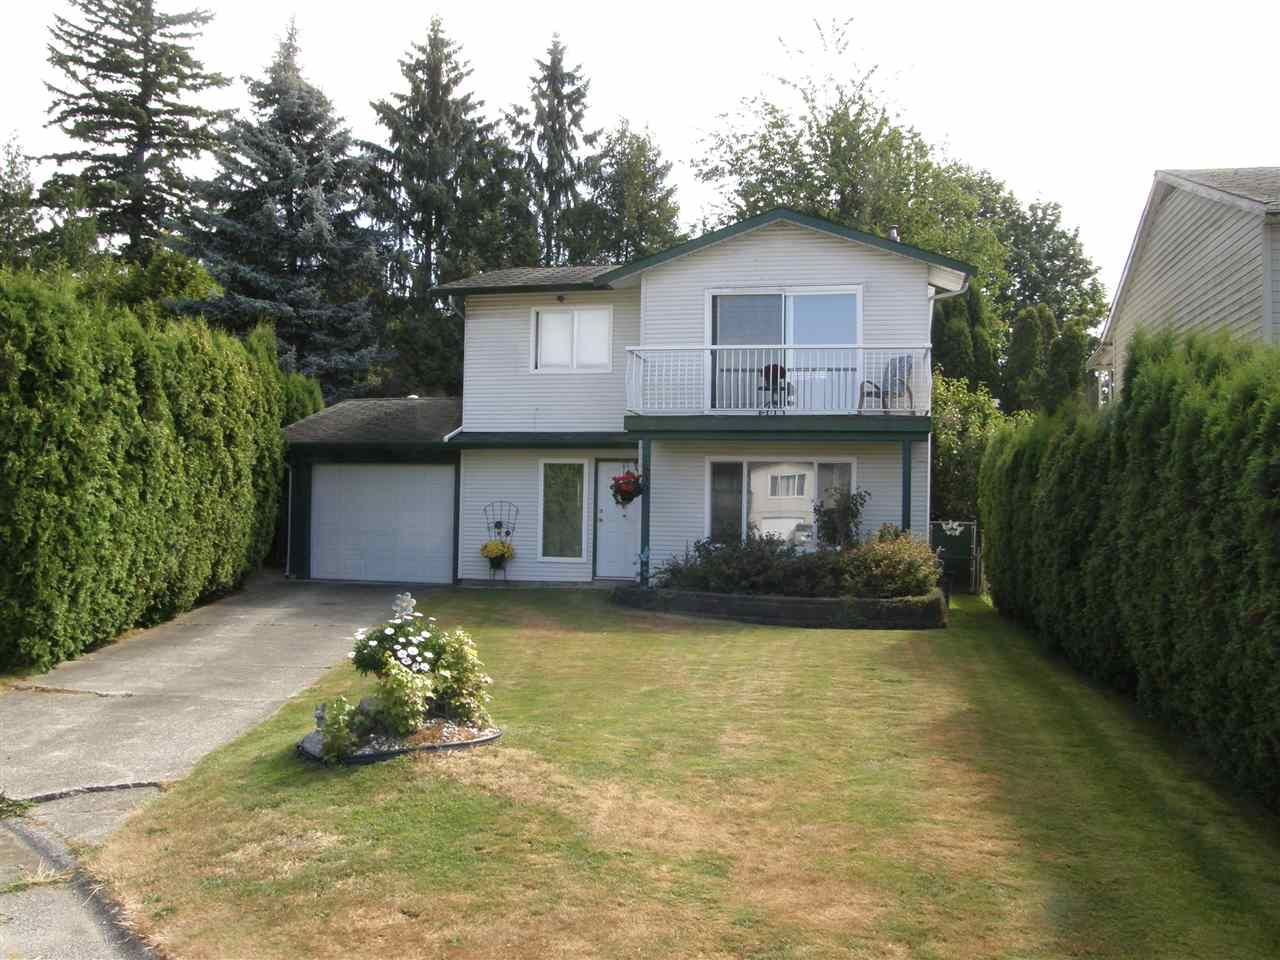 Photo 1: Photos: 1830 REEVES Place in Abbotsford: Central Abbotsford House for sale : MLS®# R2486642